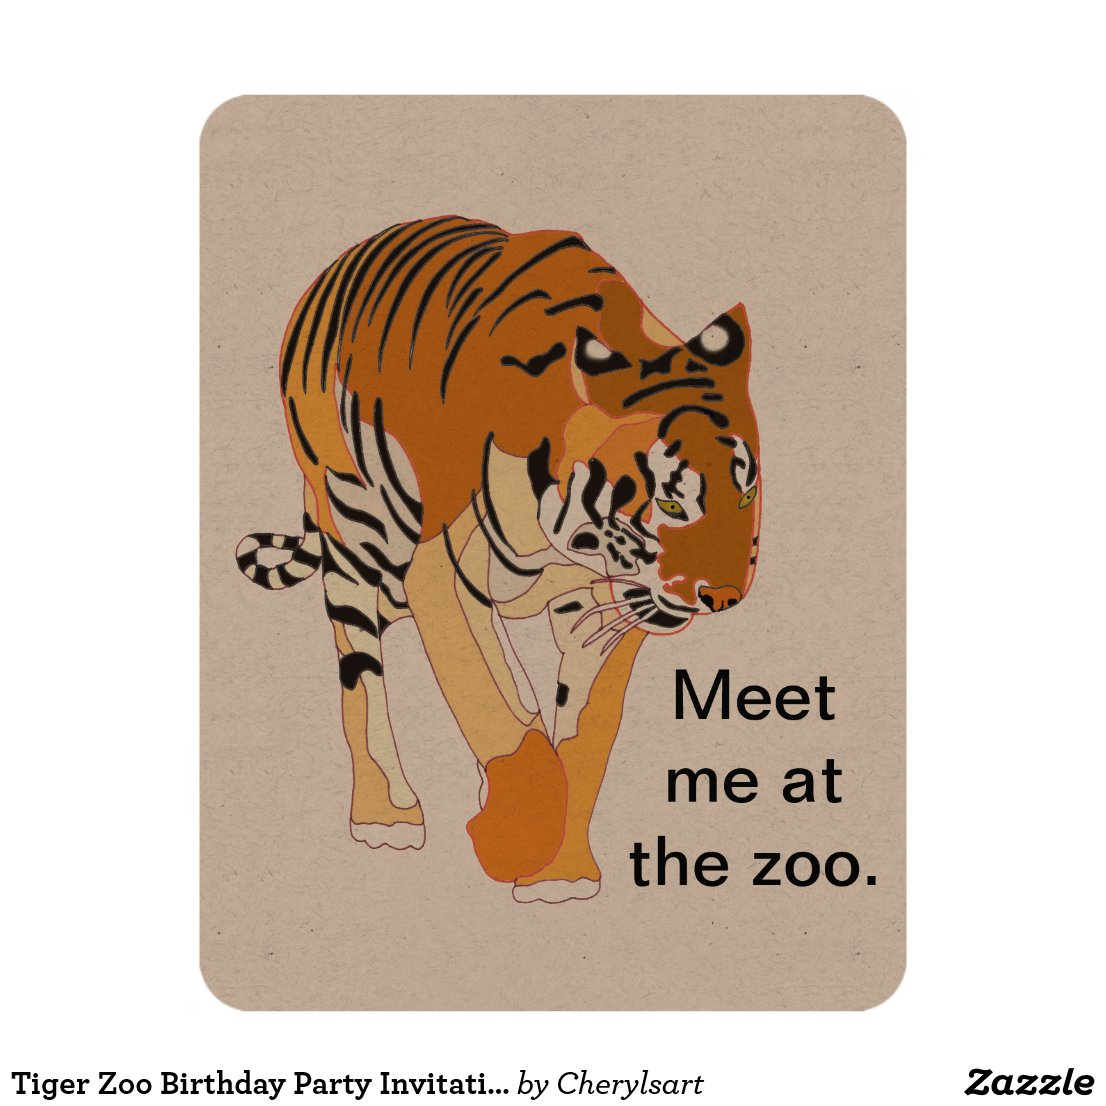 Tiger Zoo Birthday Party Invitations